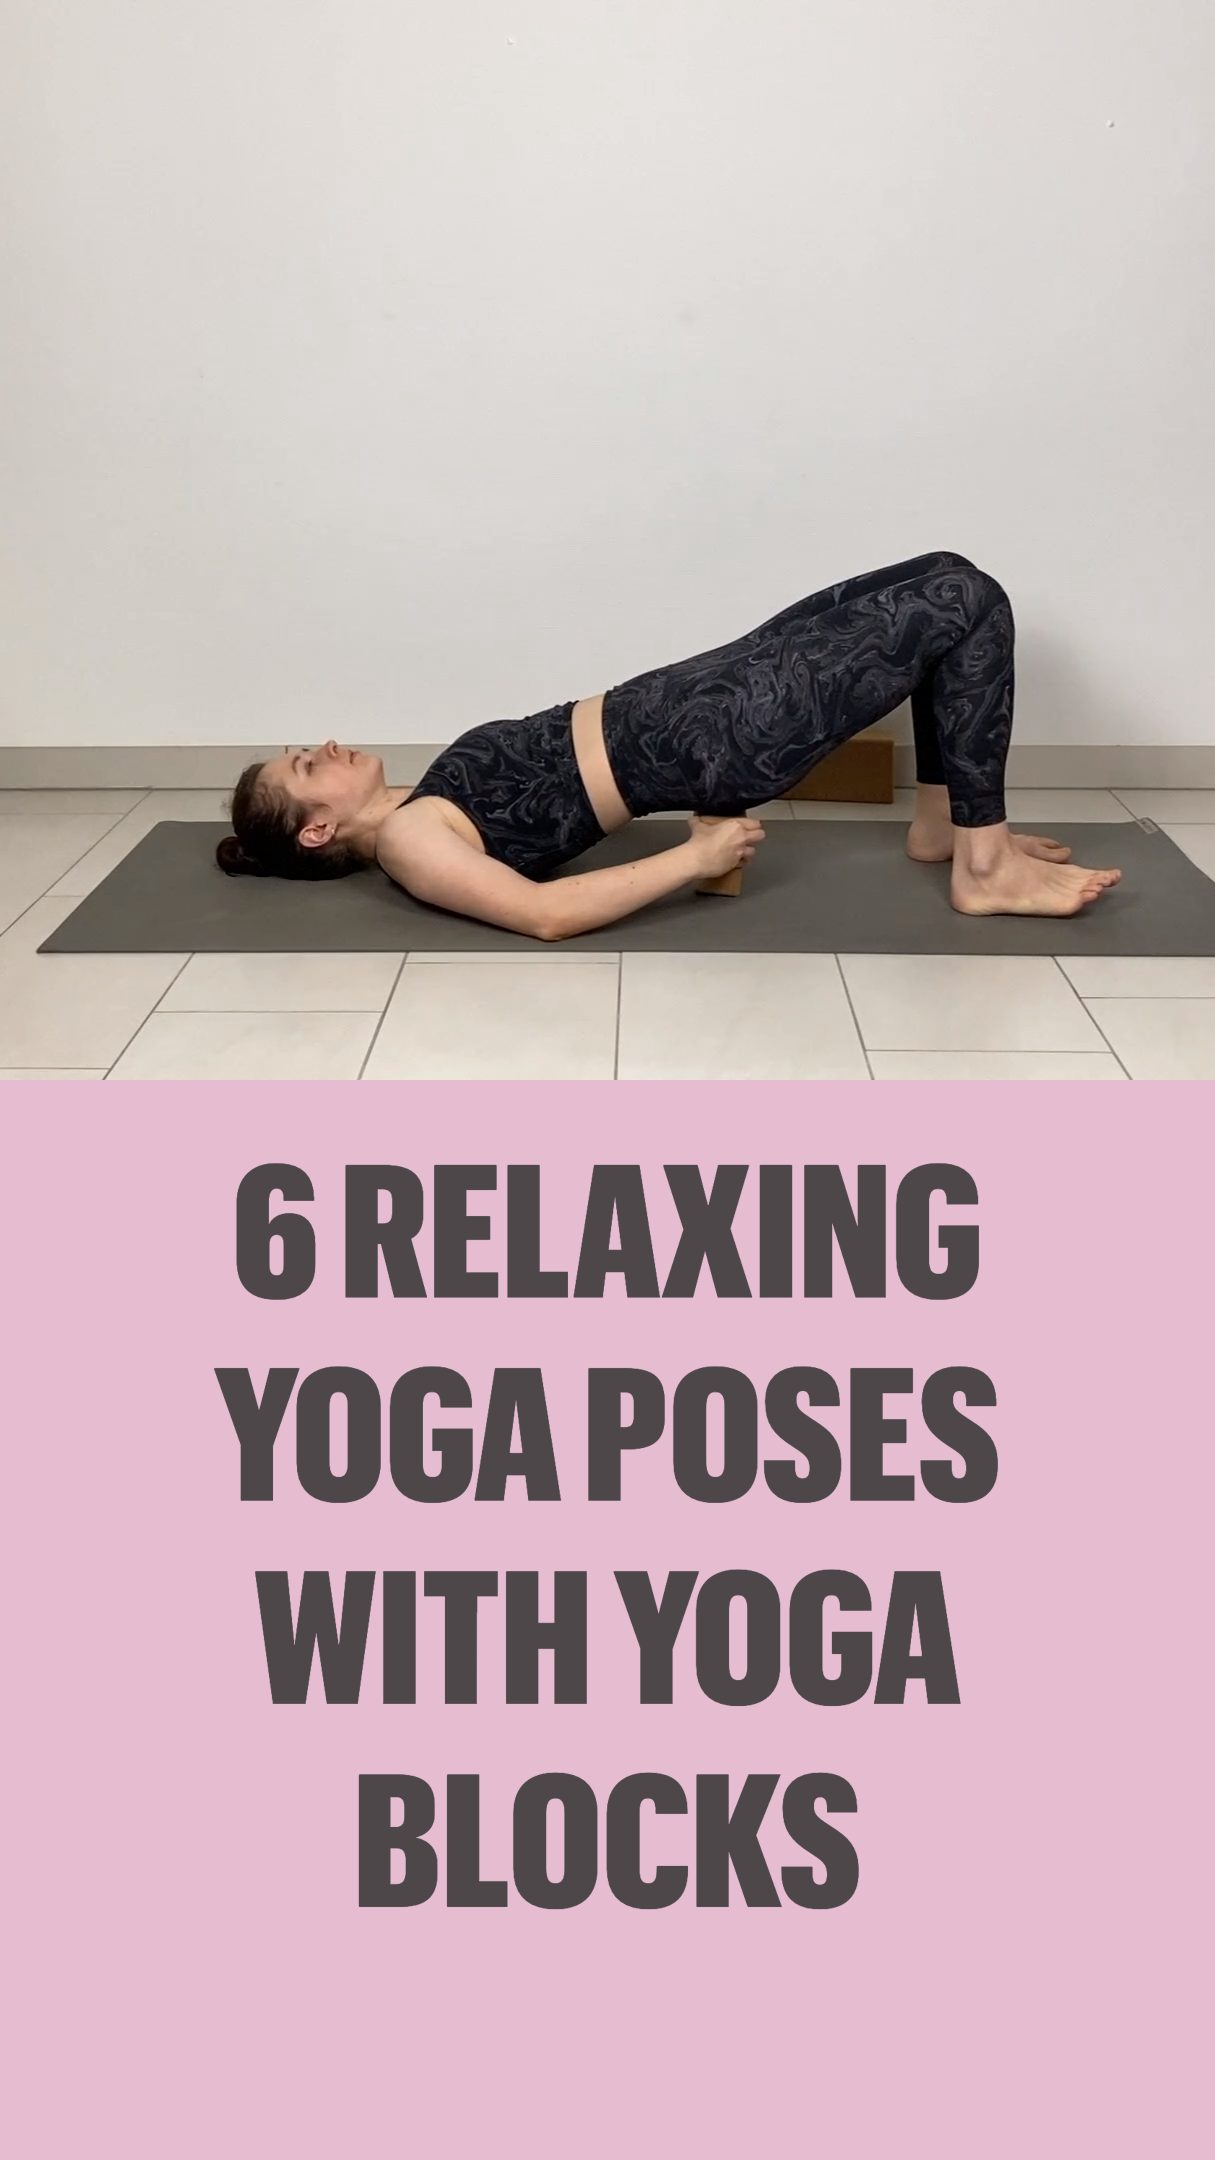 6 Relaxing Yoga Poses with Yoga Blocks